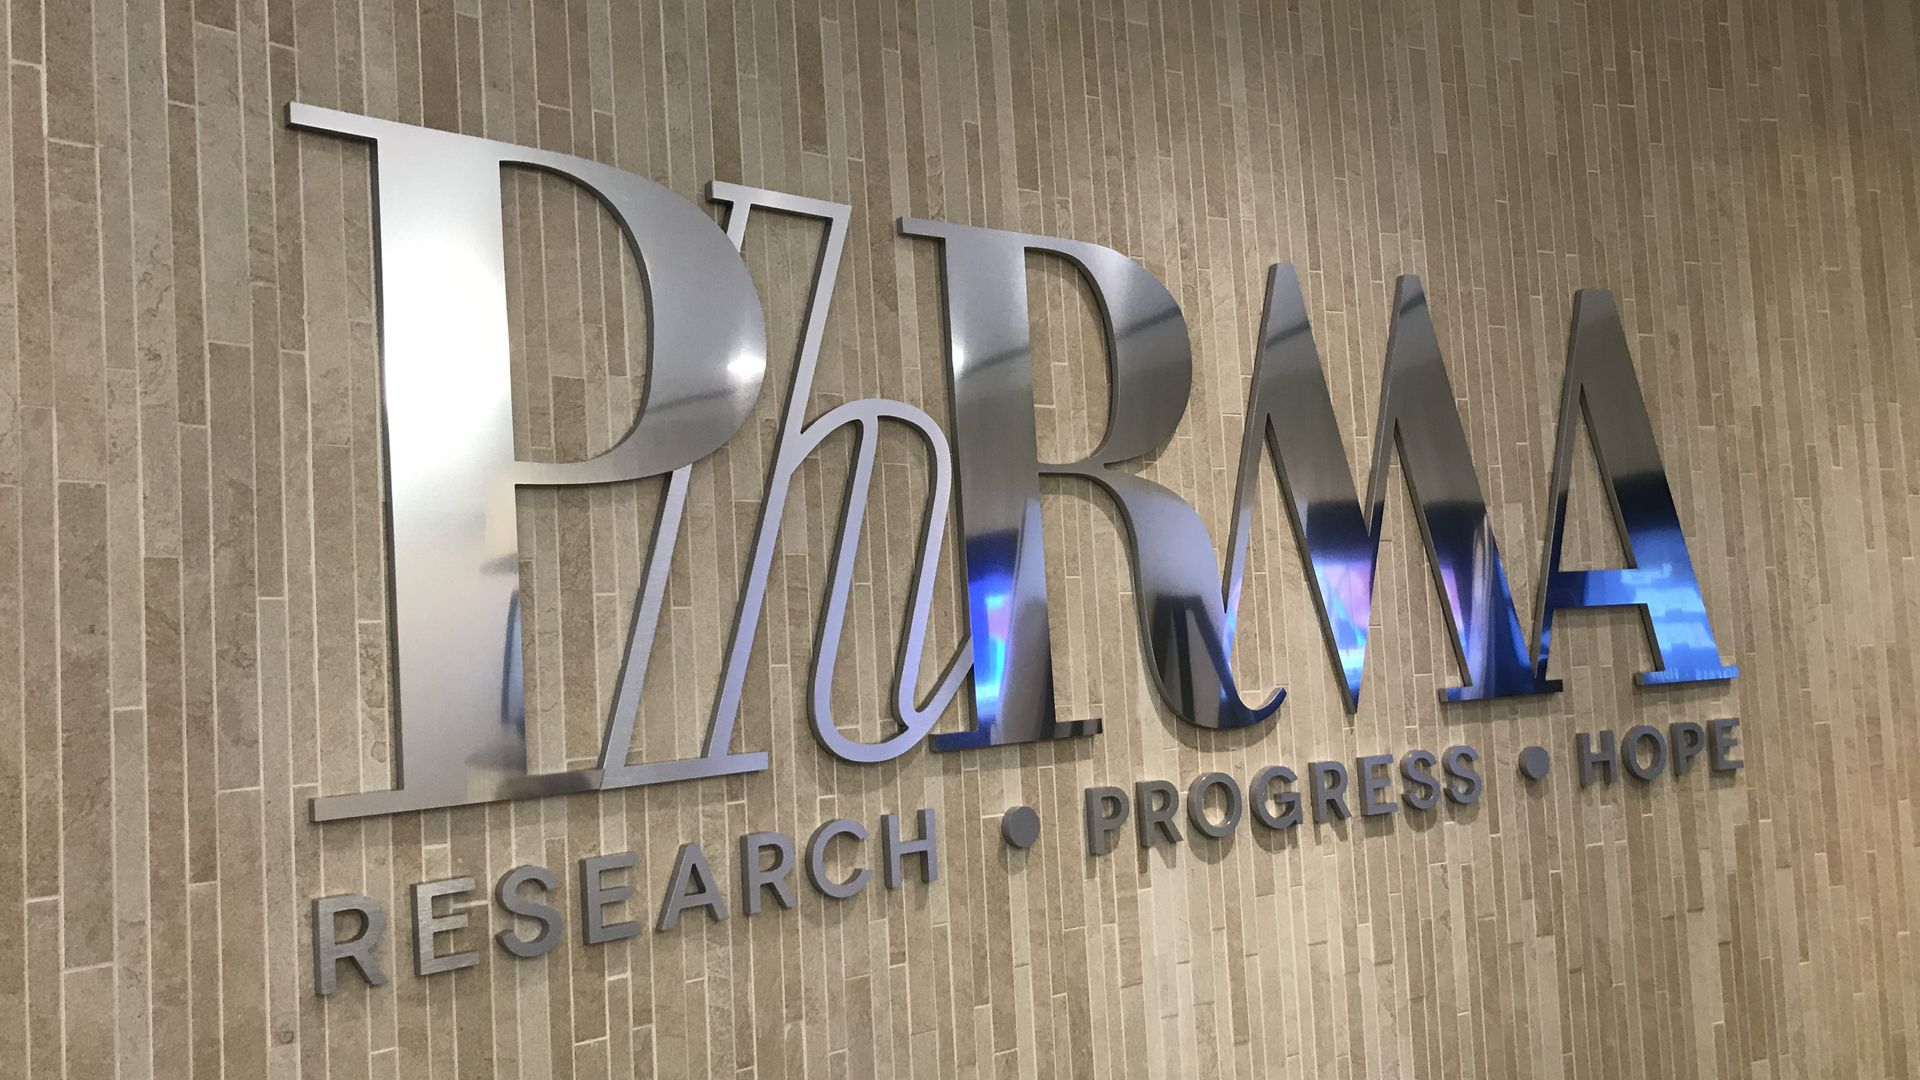 The PhRMA logo in the organization's D.C. office.